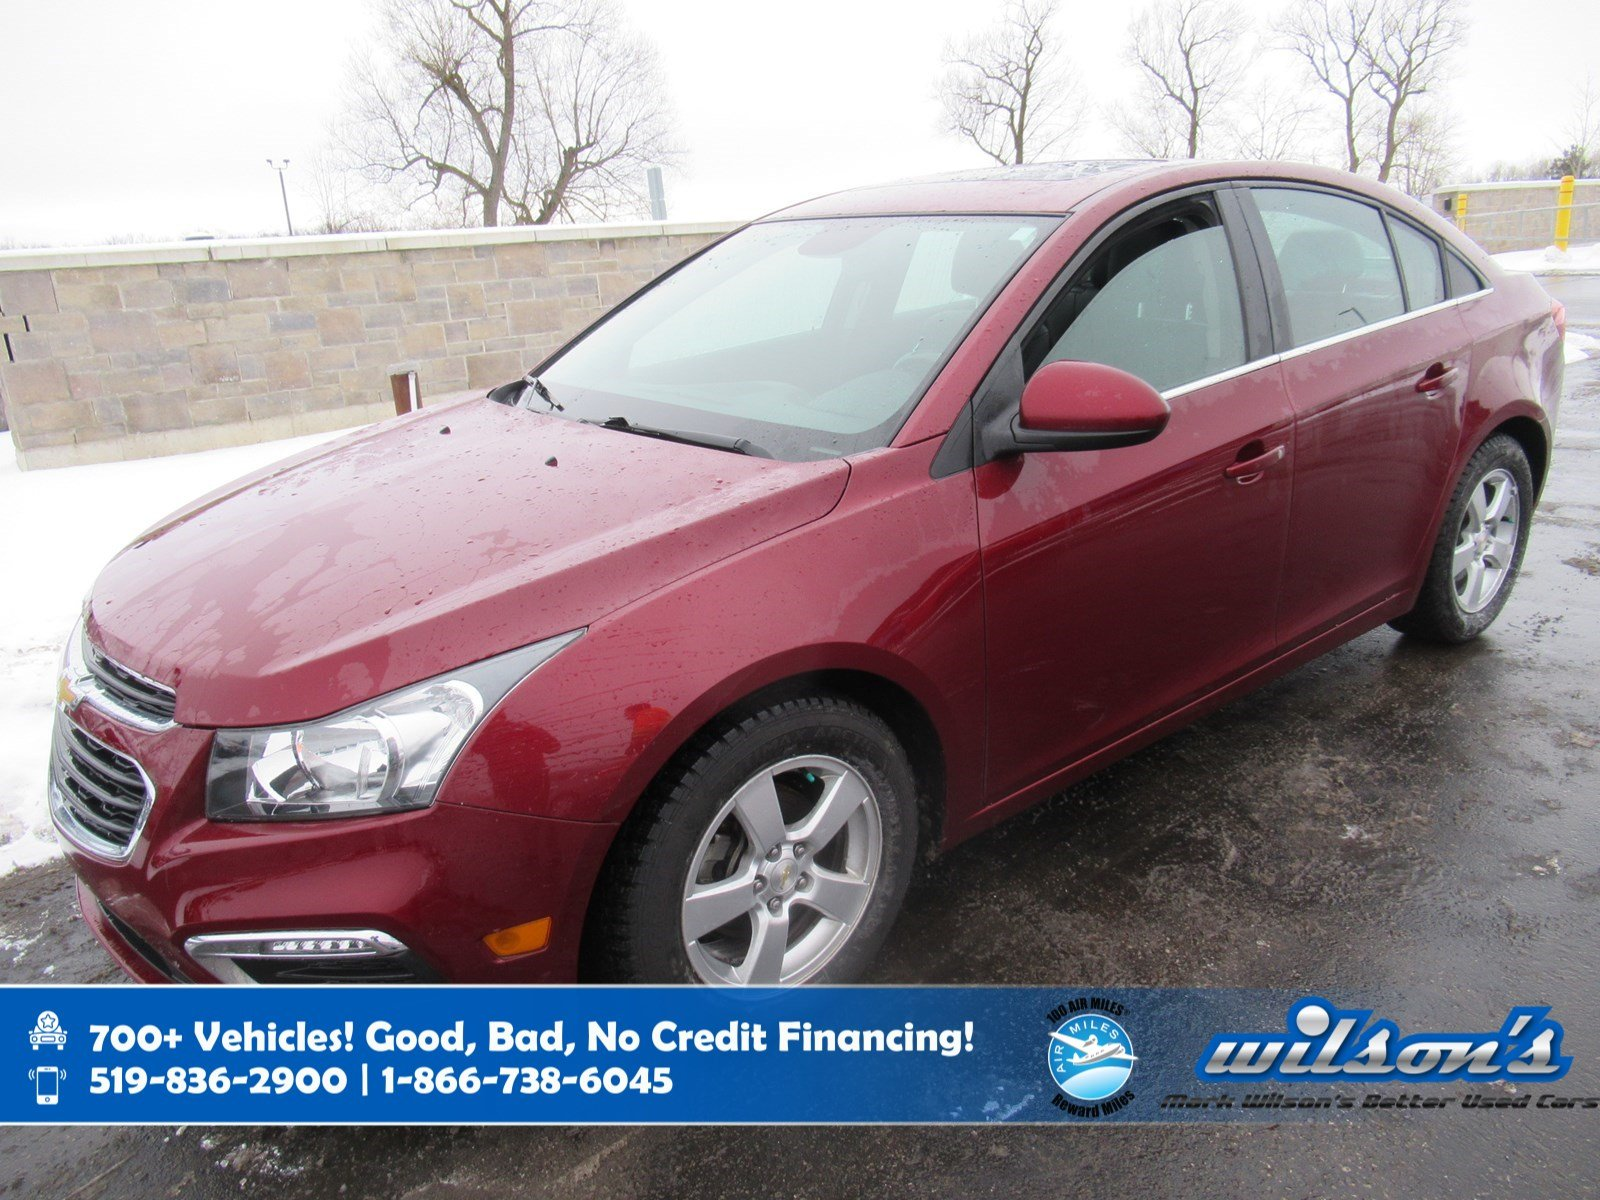 Certified Pre-Owned 2015 Chevrolet Cruze 2LT, Leather, Sunroof, Heated Seats, Remote Start, Power Seat, Rear Camera and more!